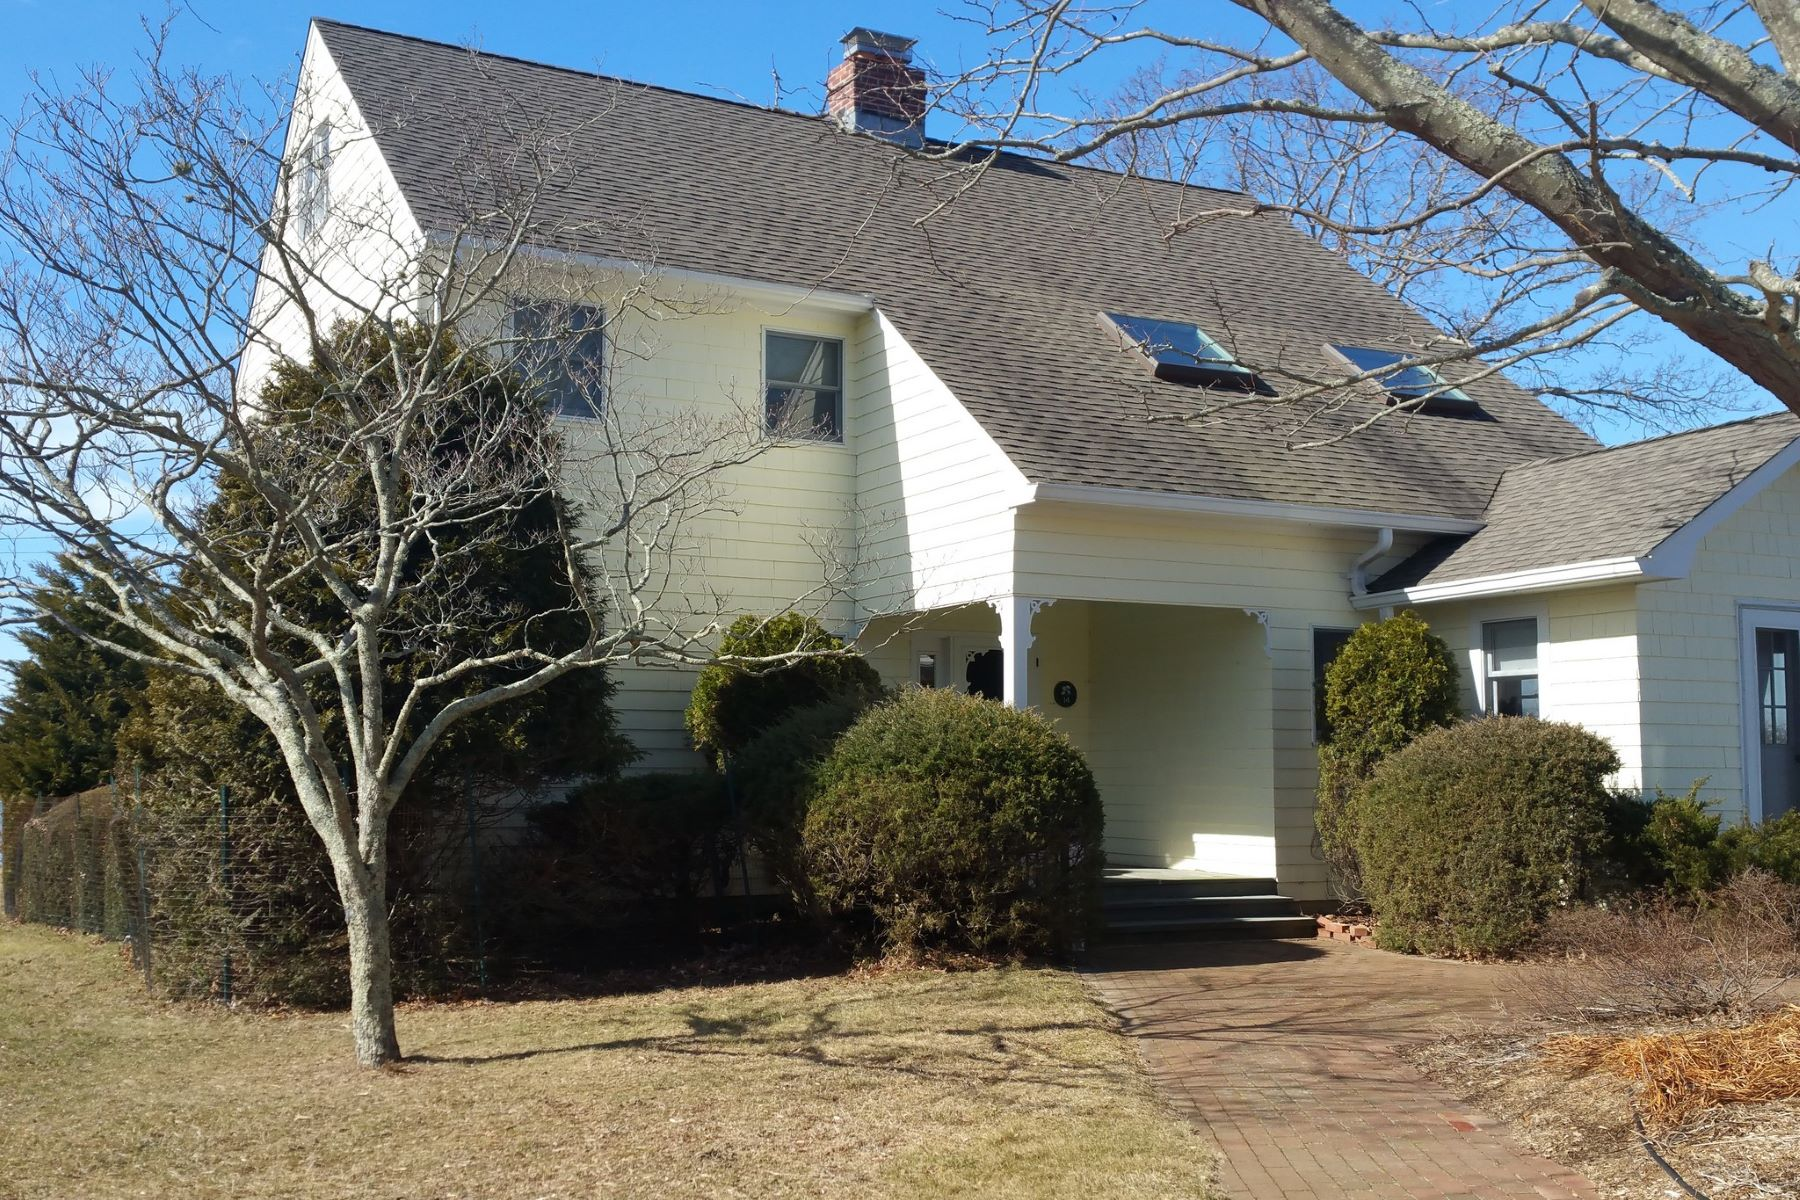 Single Family Home for Rent at 14 Montclair Ave , Shelter Island, NY 11964 14 Montclair Ave, Shelter Island, New York, 11964 United States